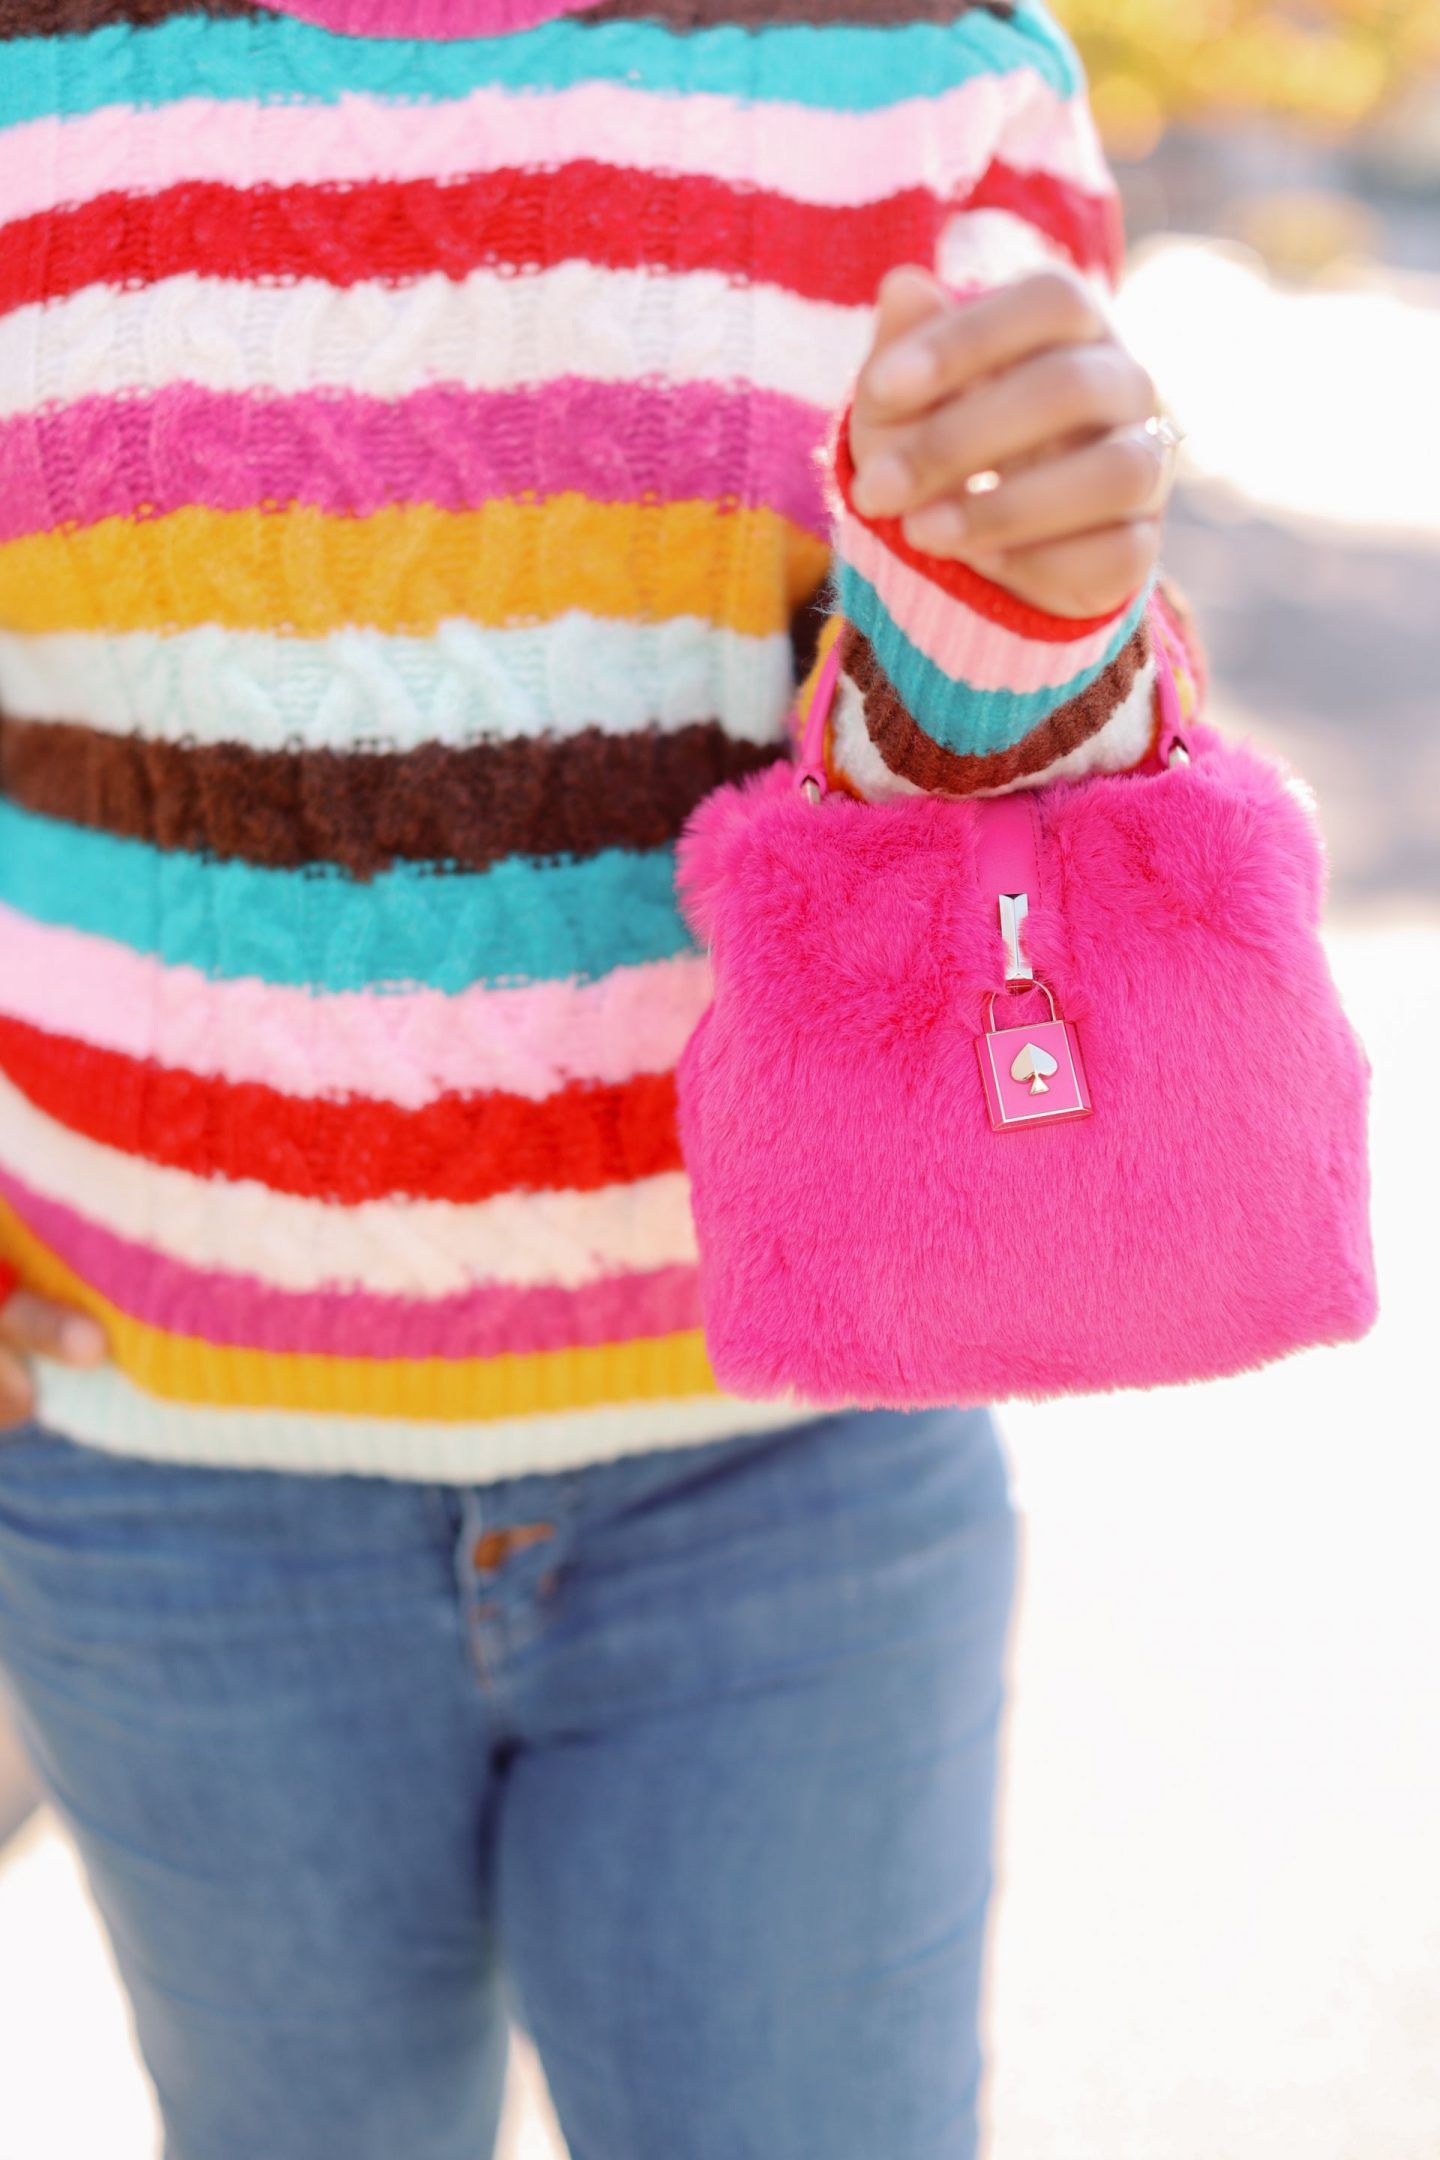 Pink Clothing by popular Kentucky fashion blog, Really Rynetta: image of a woman wearing a colorful stripe sweater, jeans, white converse sneakers, and holding a pink Kate Spade purse.